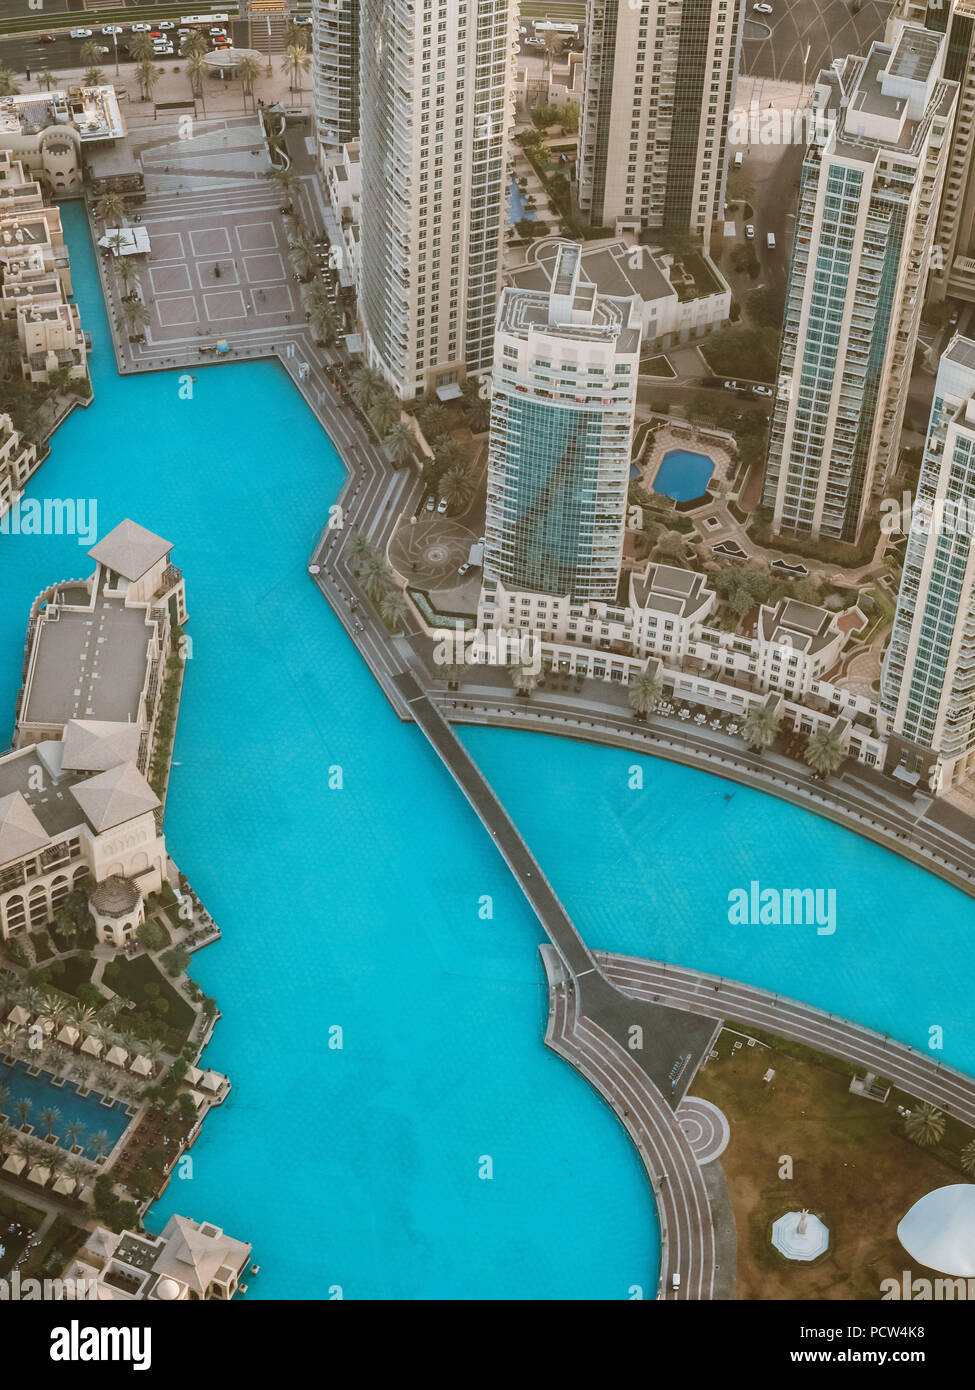 Artificial lake in Dubai from the top, United Arab Emirates. - Stock Image